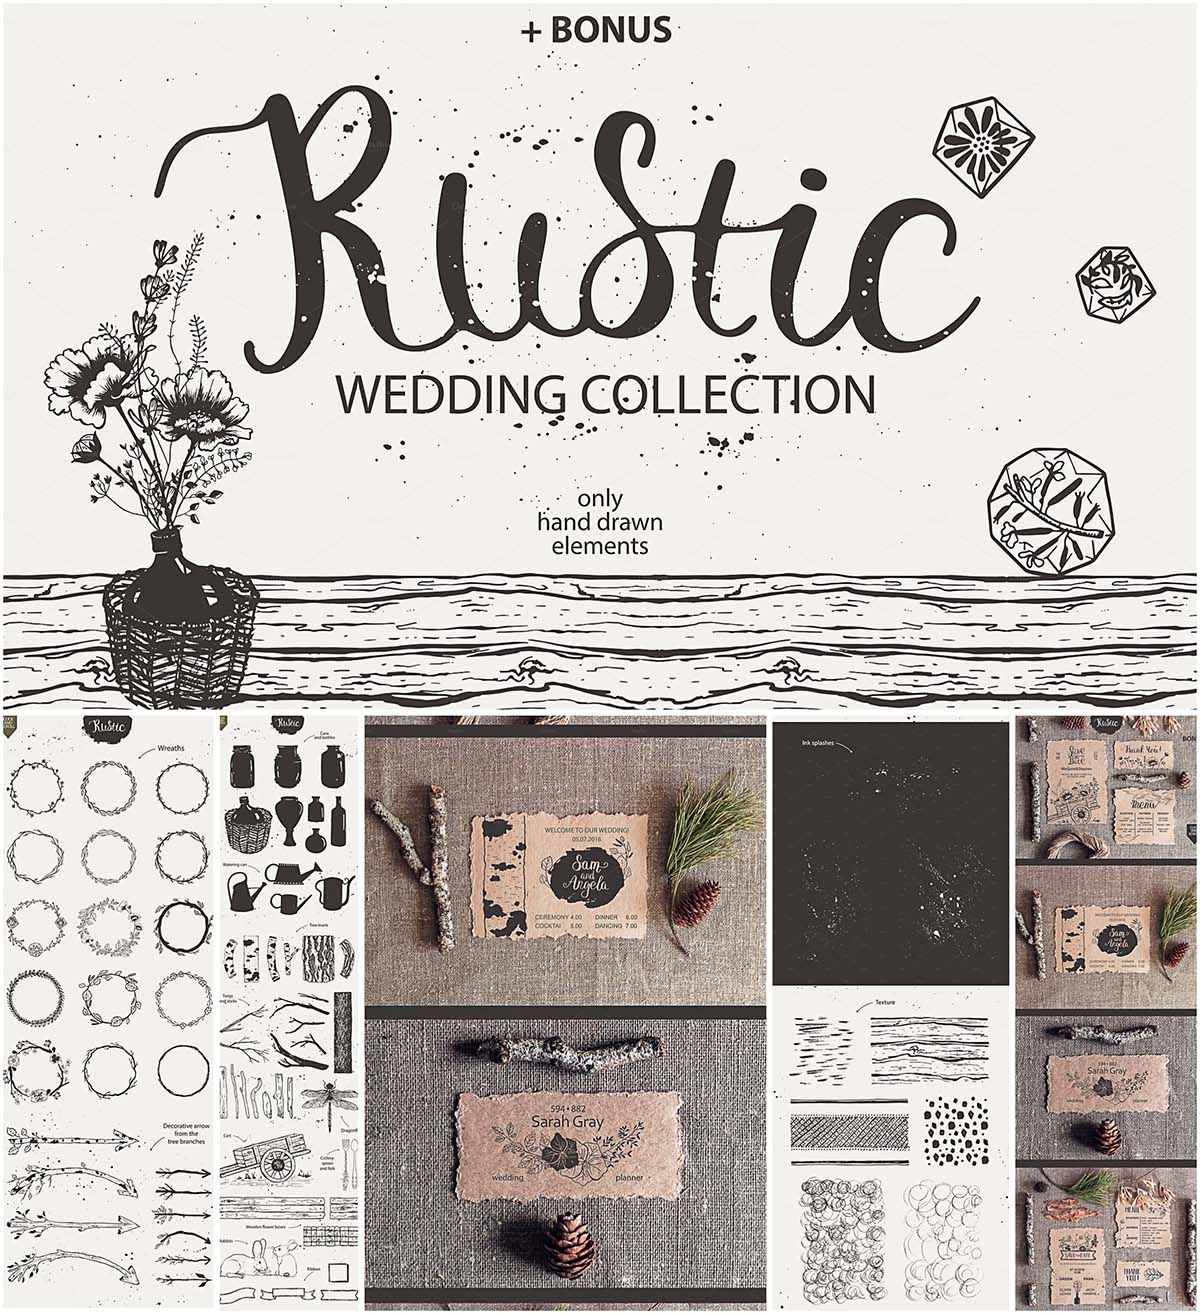 Wedding rustic elements collection | Free download